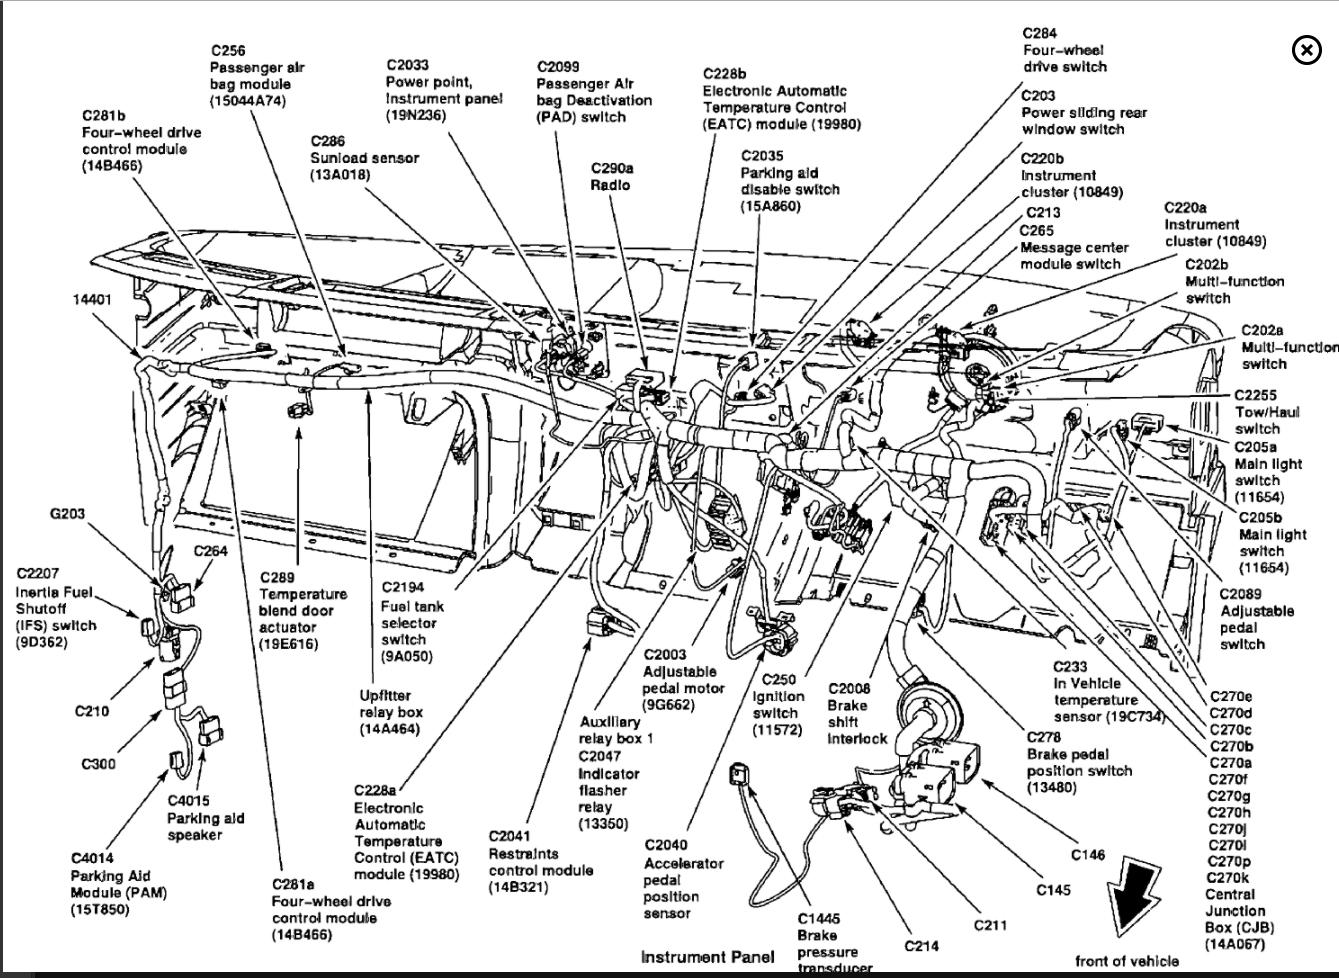 Ford 73 Fuel Line Diagram - Wiring Diagrams Value  Ford F Wiring Diagram on 73 ford f250 steering, 73 ford f250 air conditioning, 73 dodge charger wiring diagram,